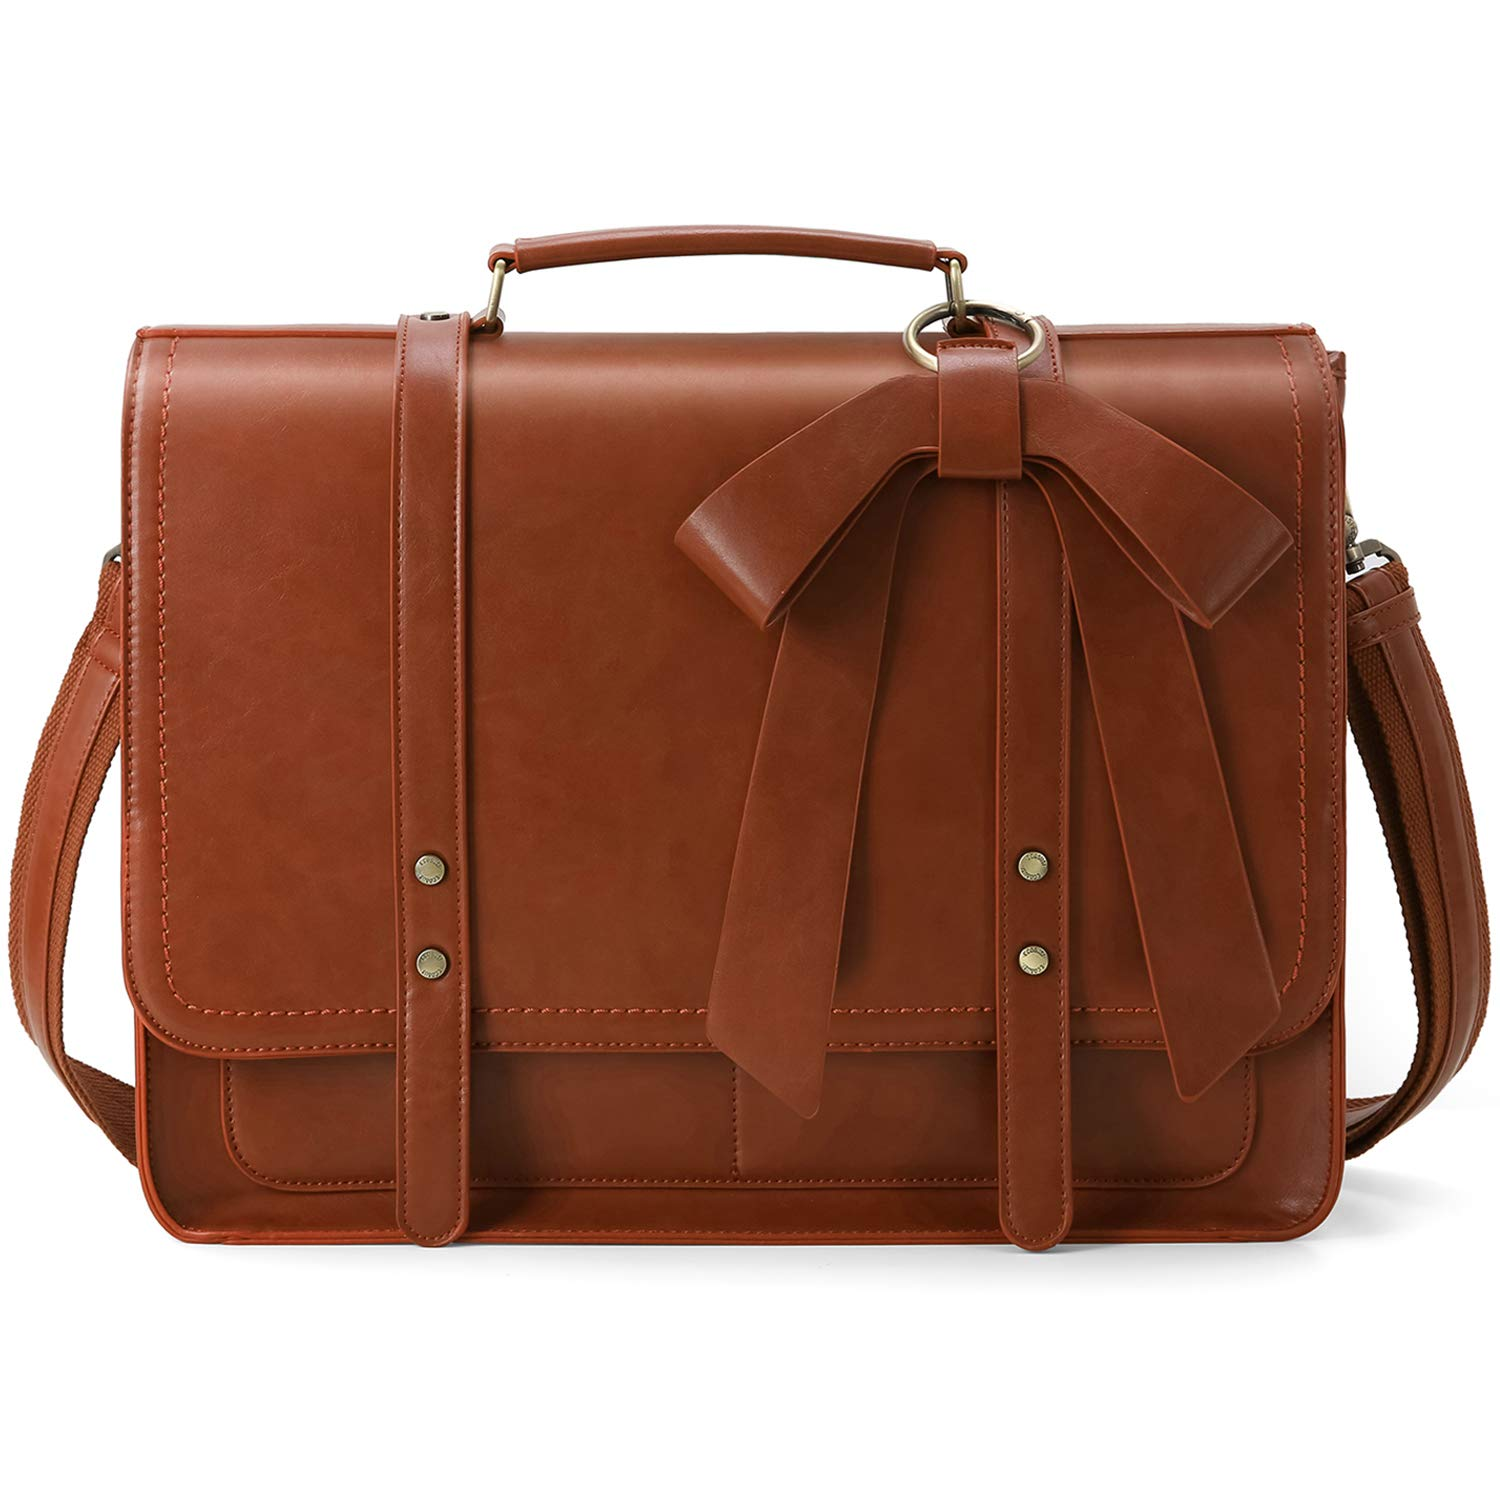 The Women Brown PU Leather Briefcase travel product recommended by Syed Ali Hasan on Pretty Progressive.